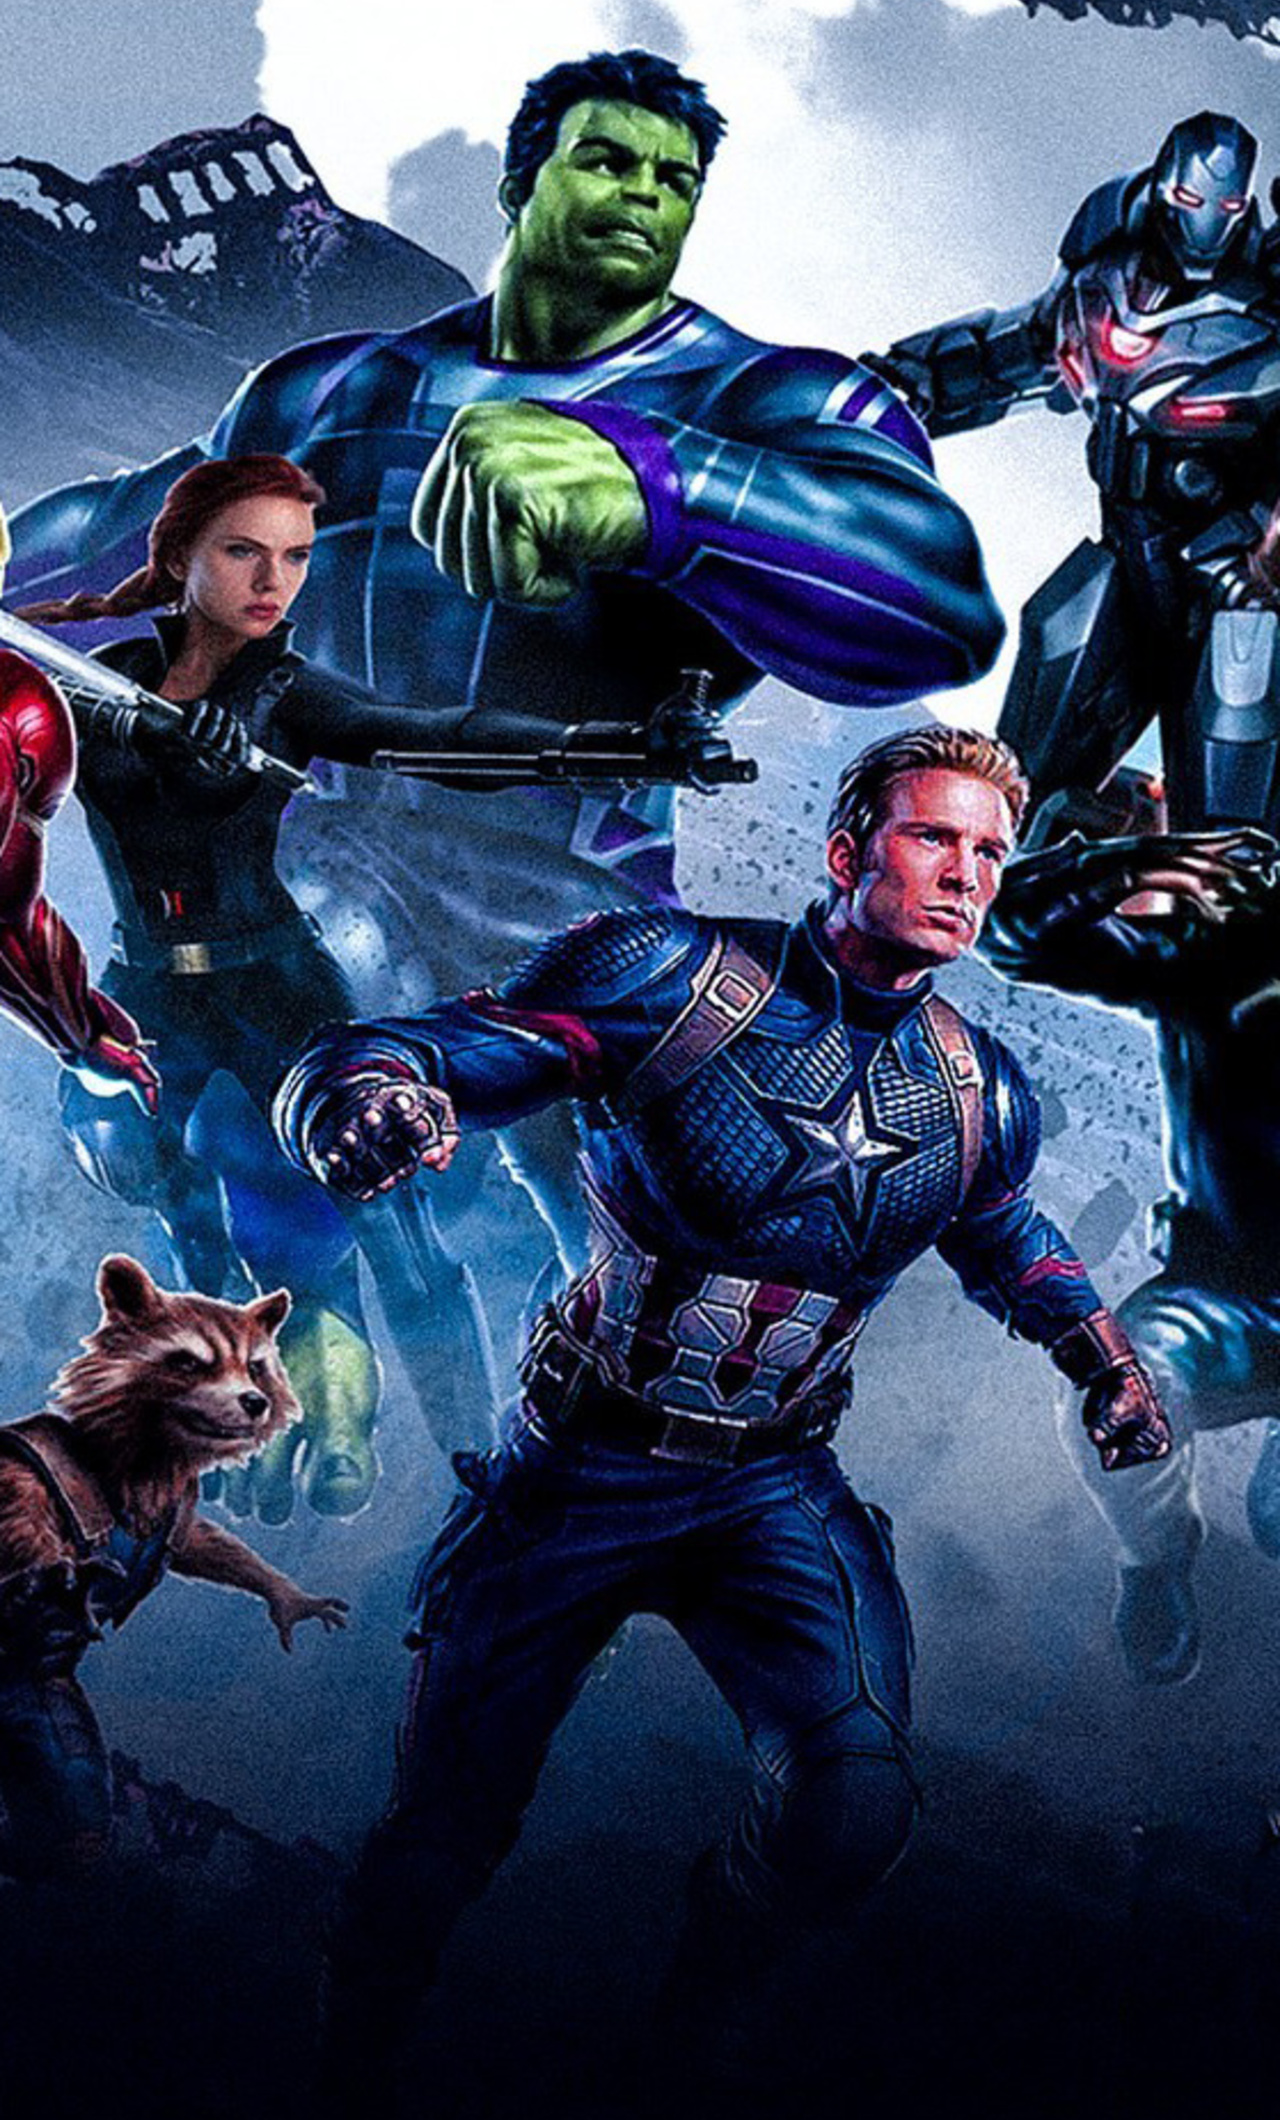 Avenger End Game Lk21 : avenger, Avengers, Endgame, Download, Telegram, AVENGERS, ENDGAME, Movie, About, Details, Channel, Where, Interesting, Information, Published., Kayleer41-images